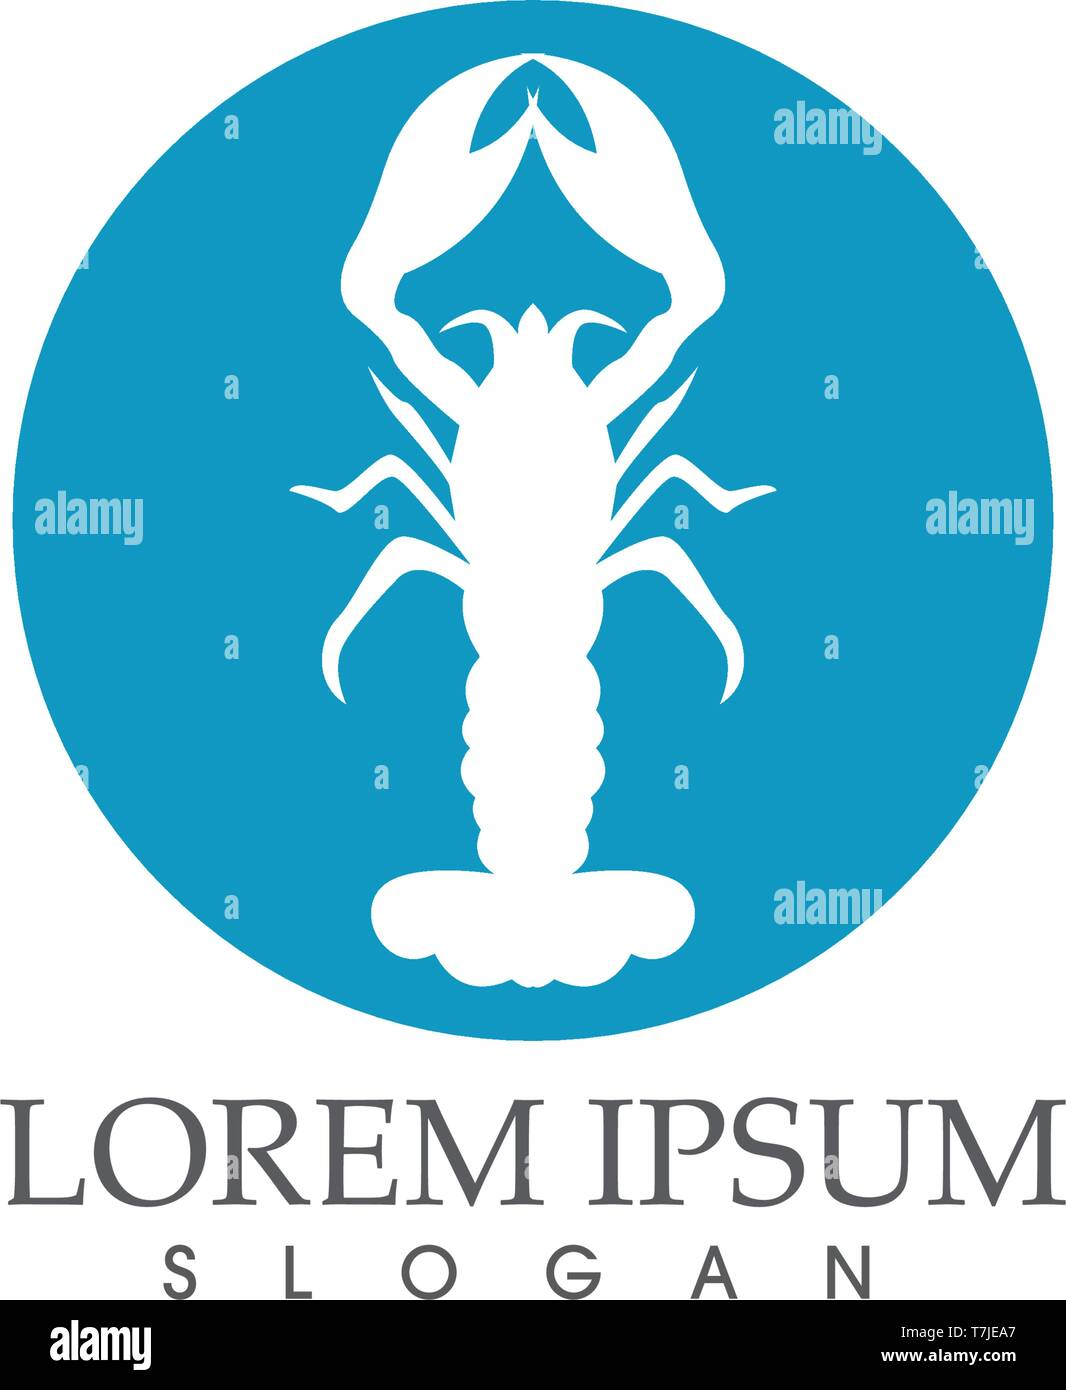 Icon crayfish. Lobster - Stock Vector